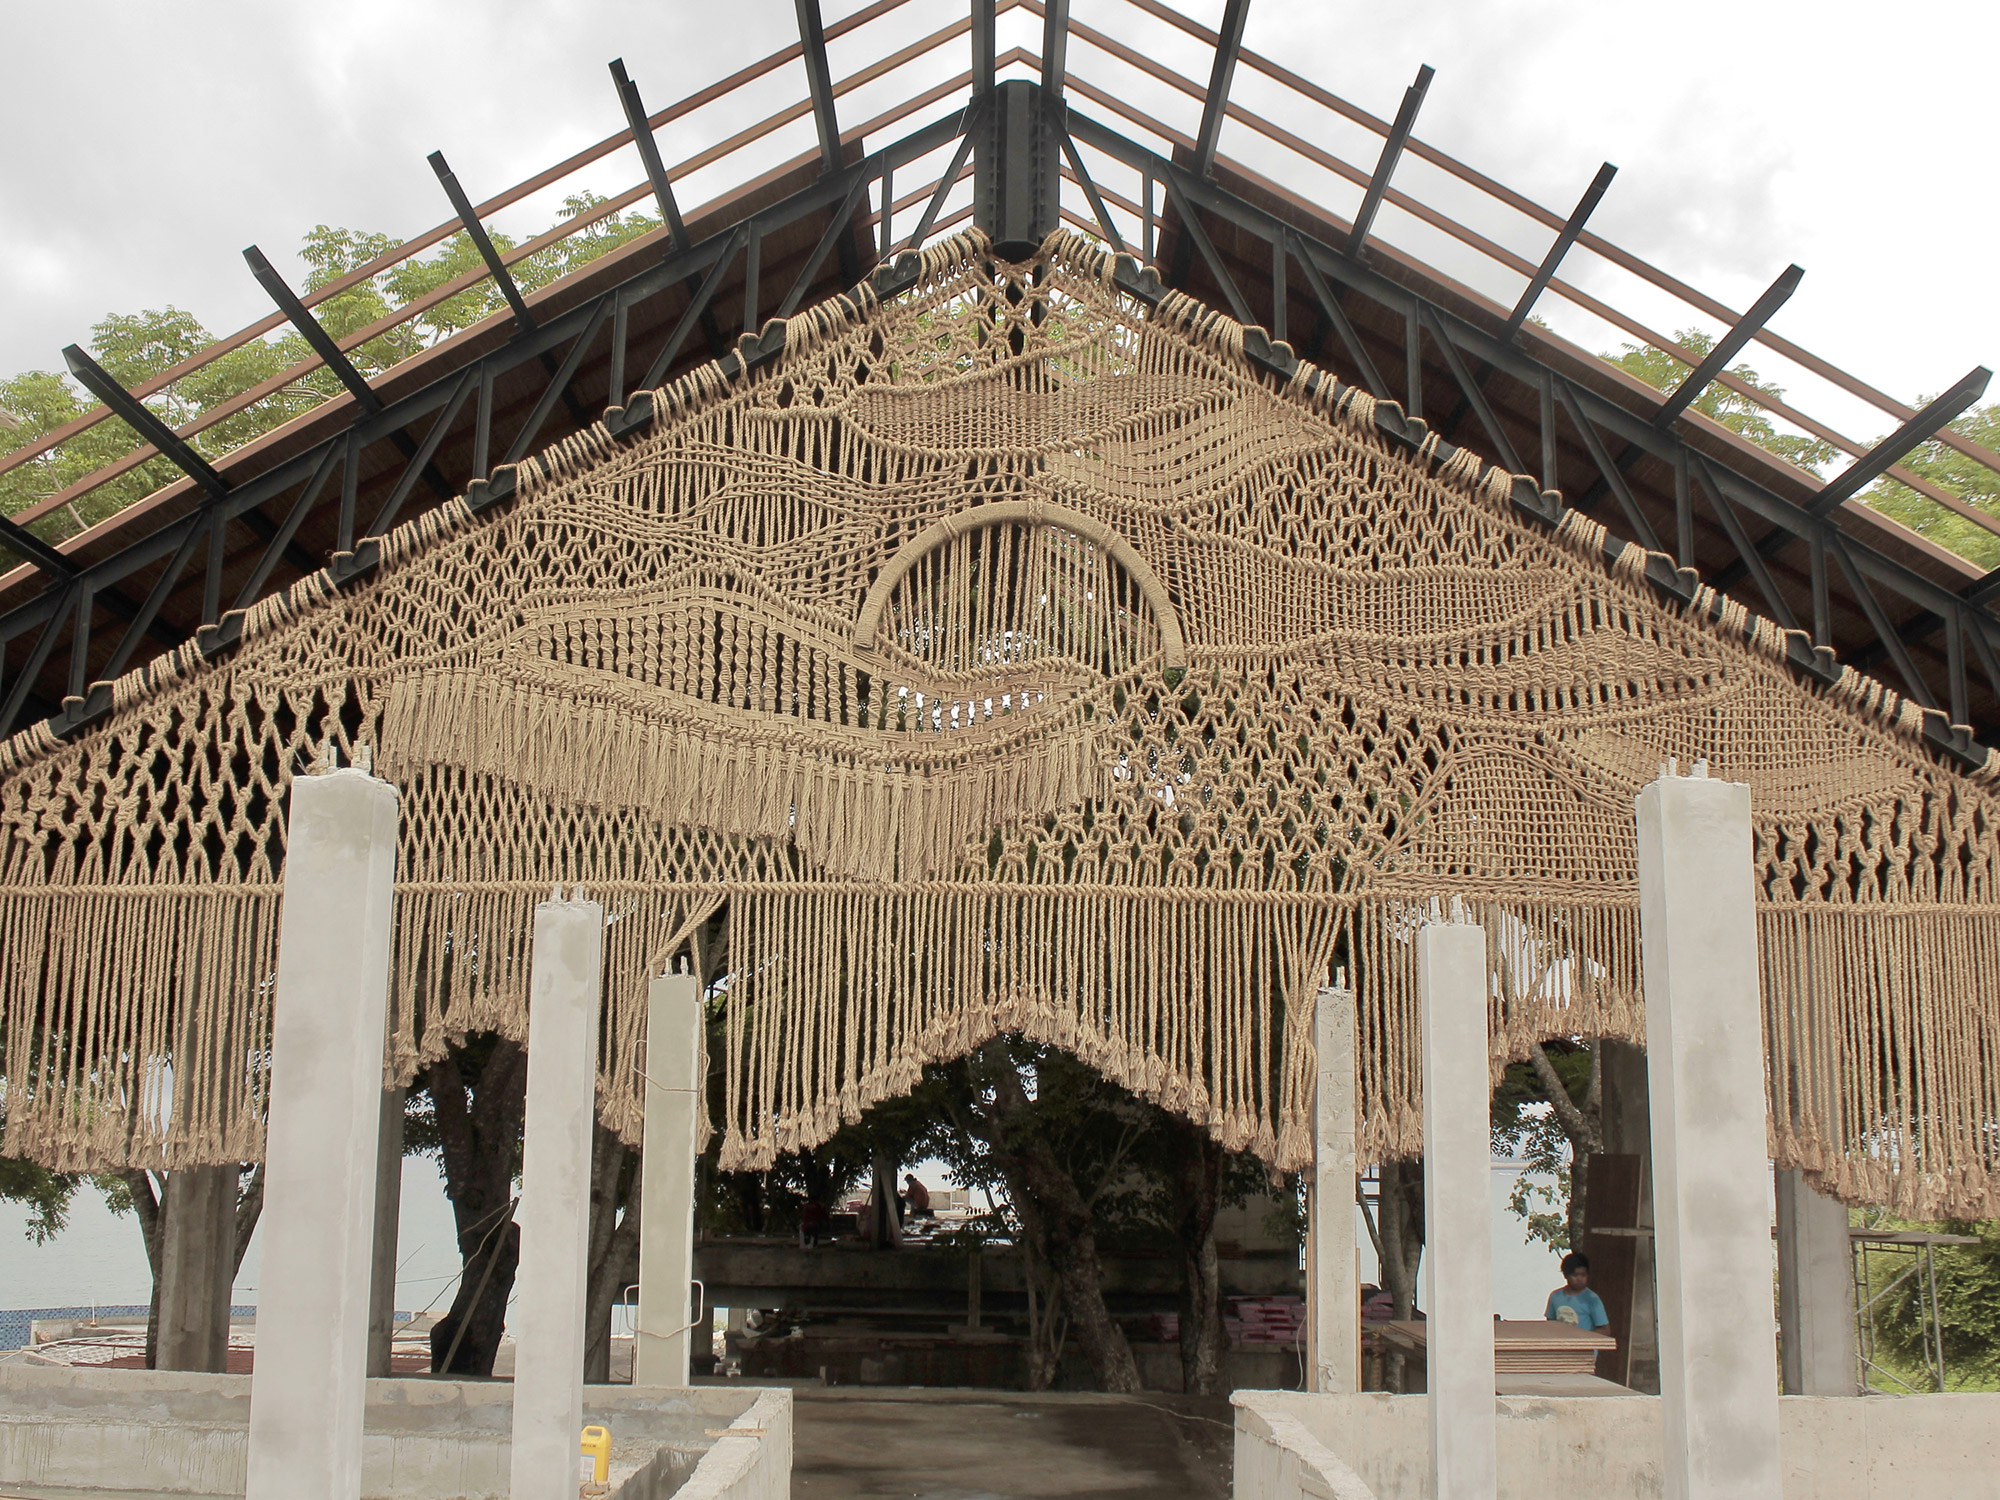 A Trio of Monumental Macramé Installations Stretch 37 Feet Across a Seaside  Structure in Bali | Colossal